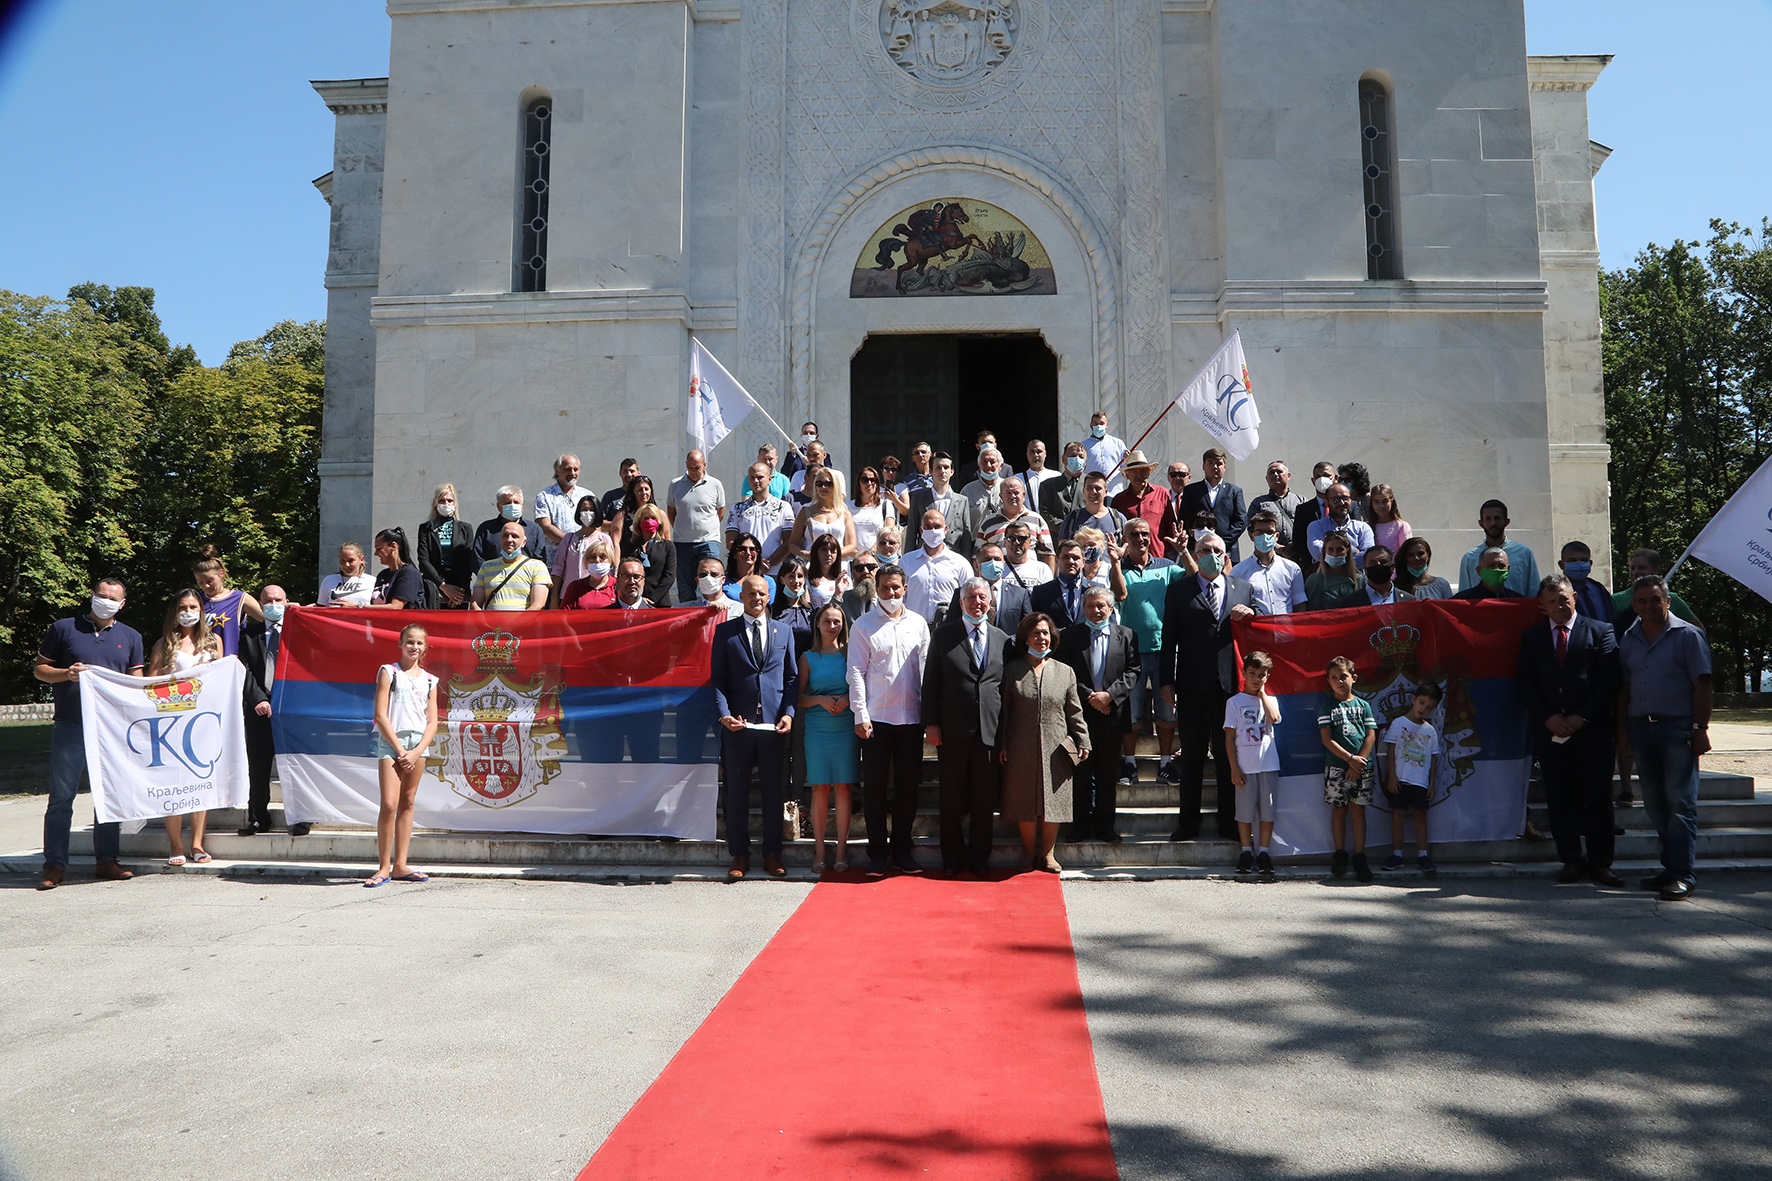 TRH with the members of the Kingdom of Serbia Association